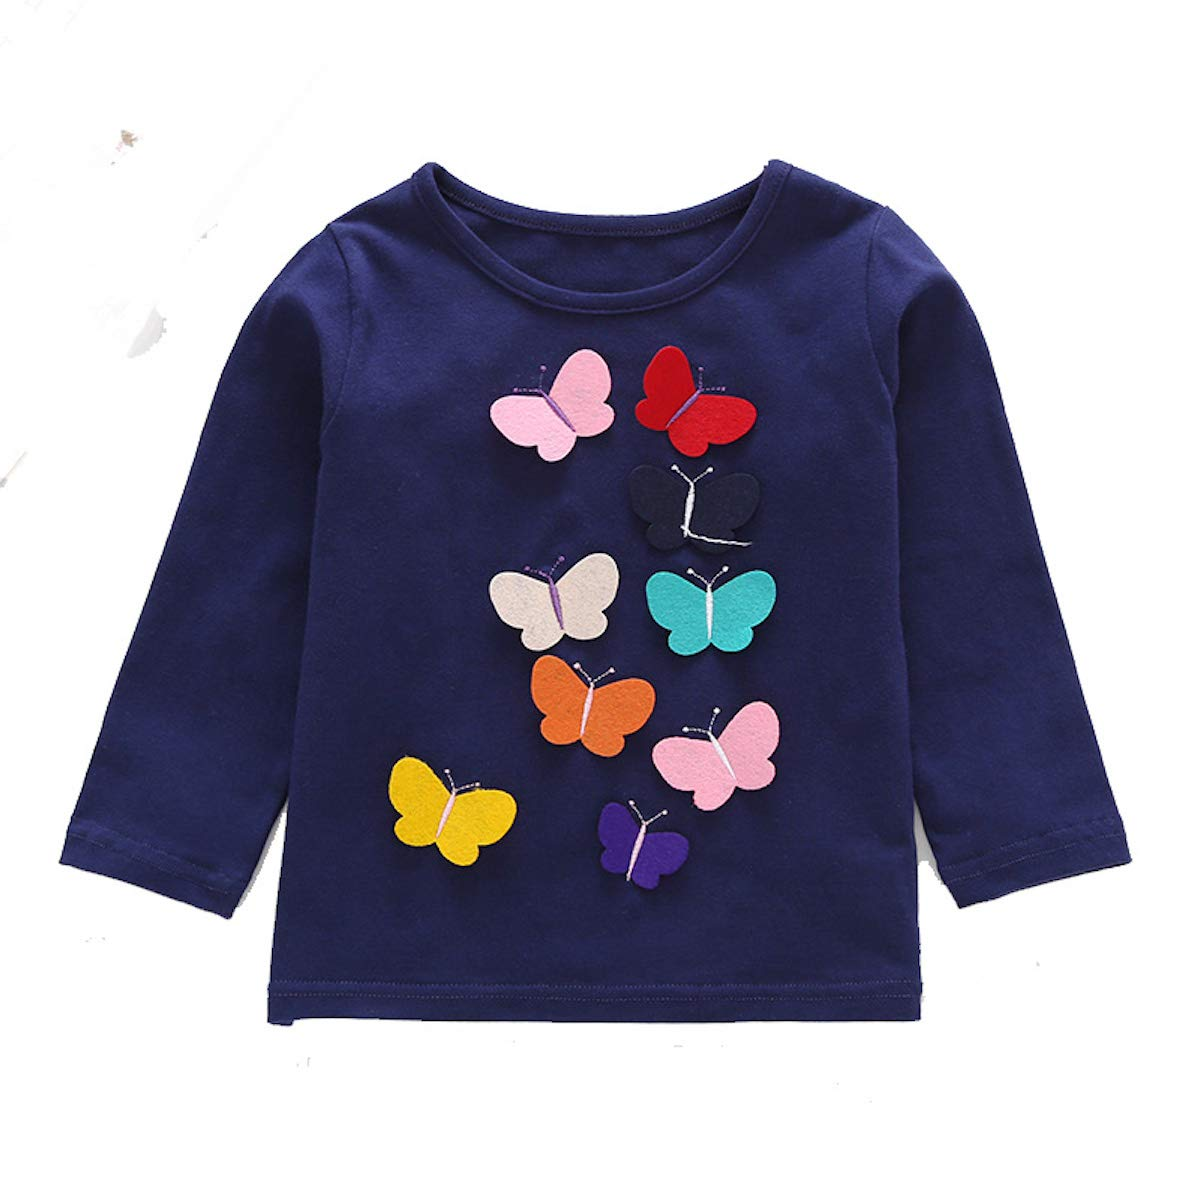 Freefly Kids Baby Girls Long Sleeve Sweater Floral Warm Pullover Tops T-Shirt Blouse for 1-6 Years